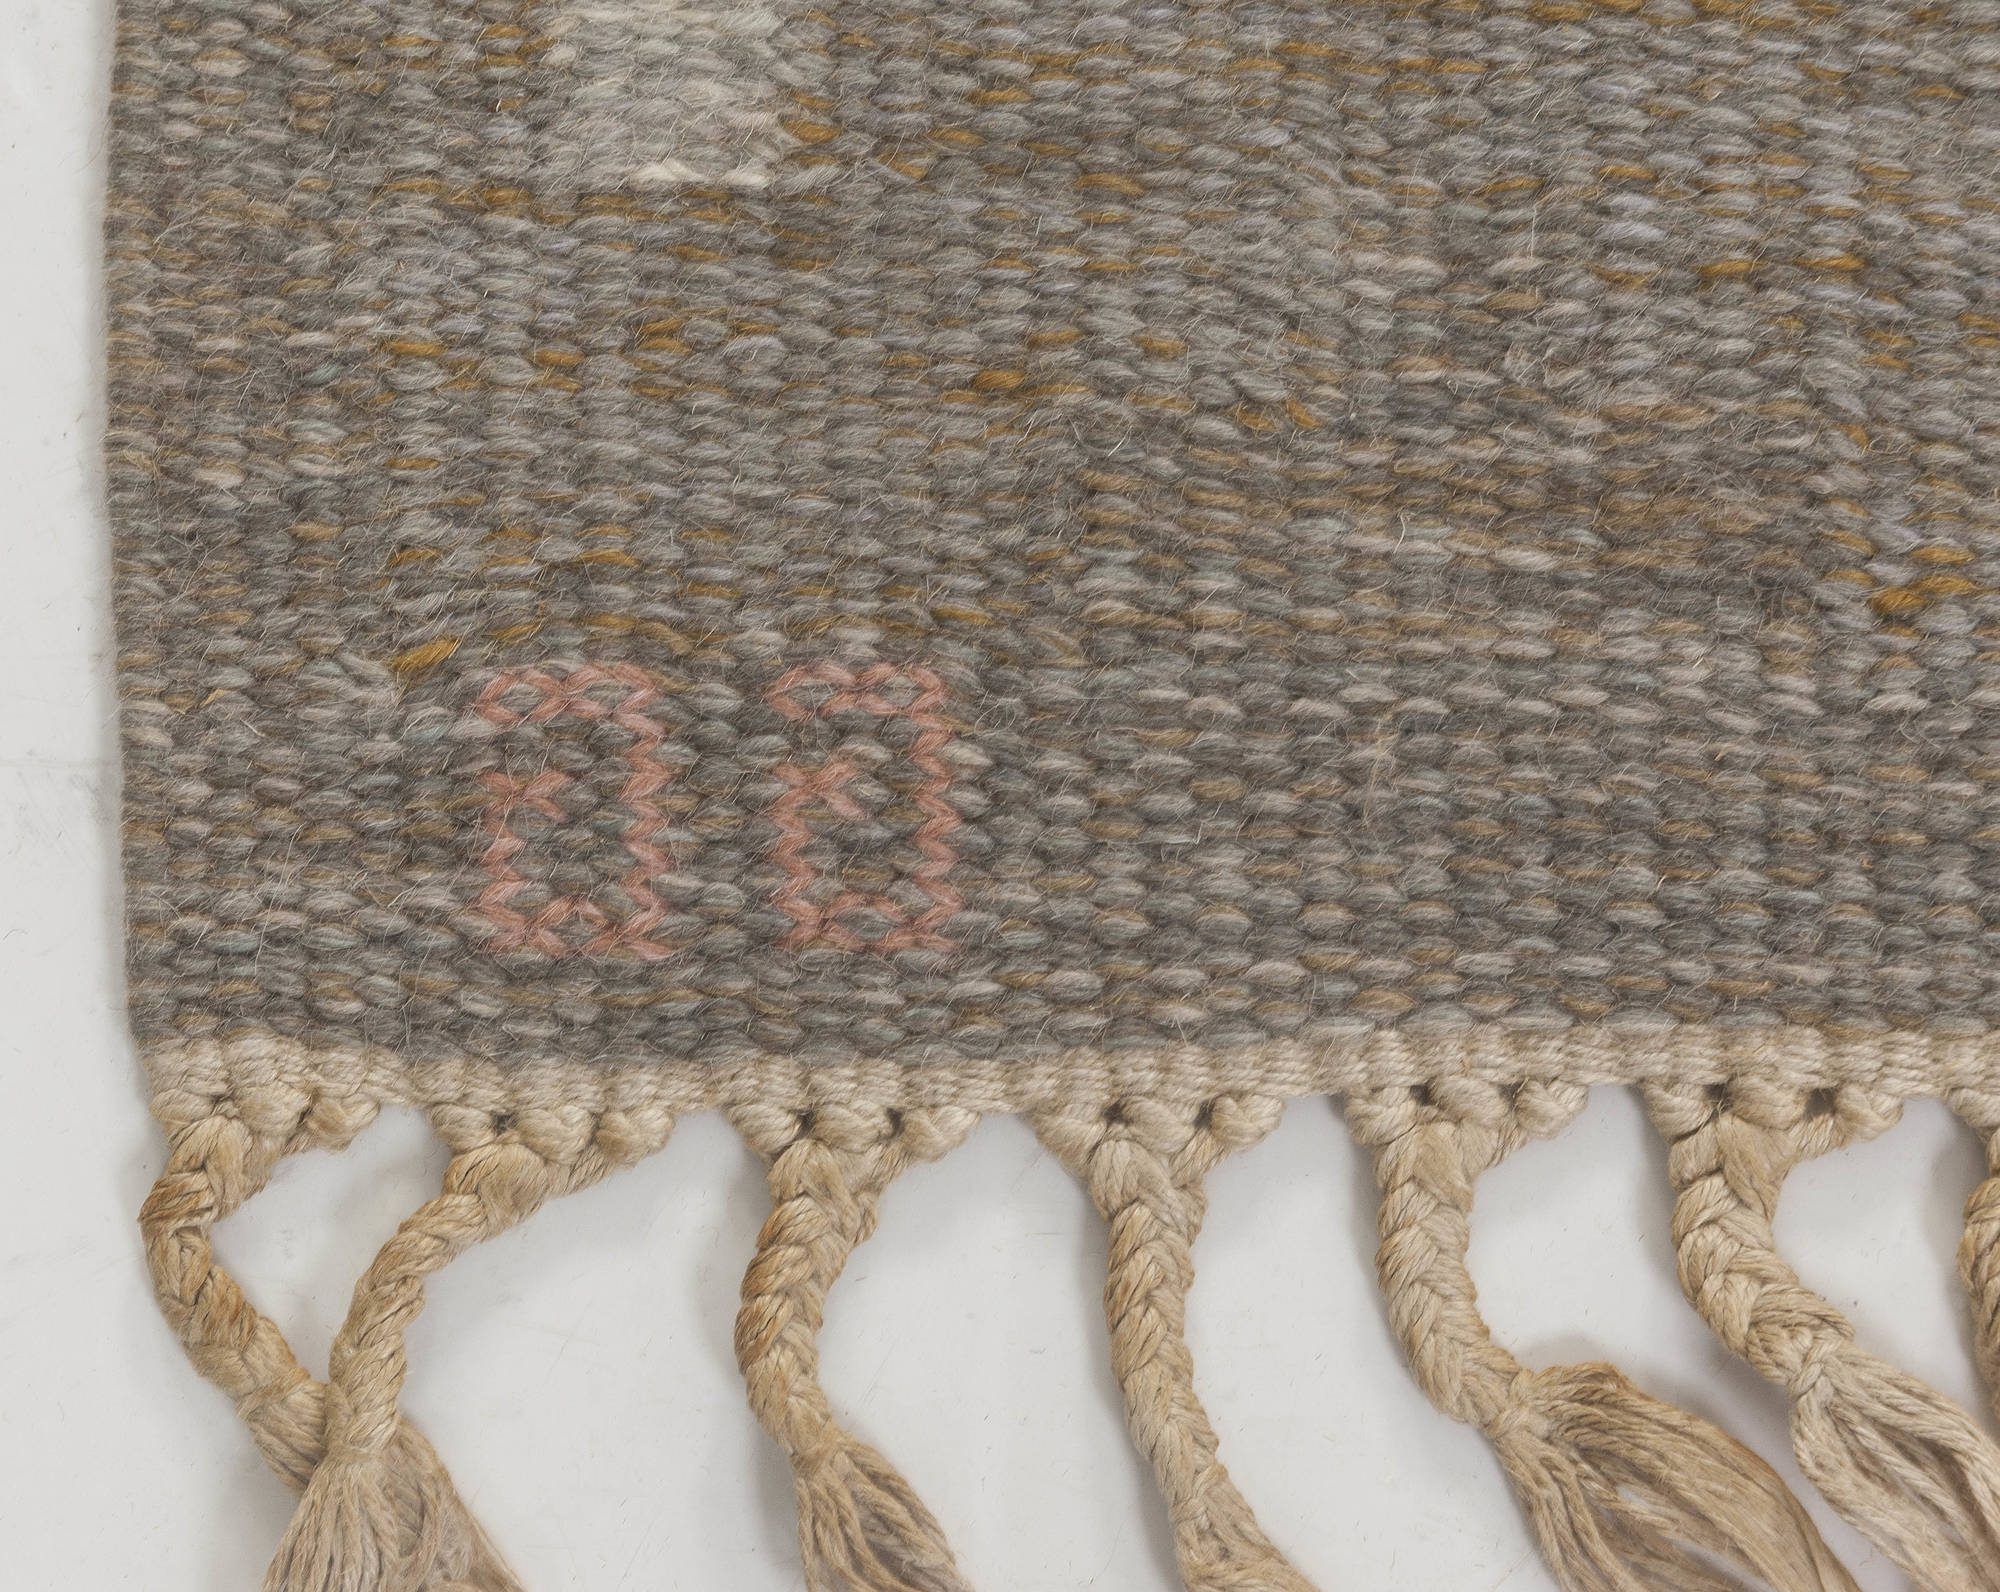 Mid-Century Swedish Wool Rug by Grannsjo Carlsson in Grey, Taupe, and Pink BB6545